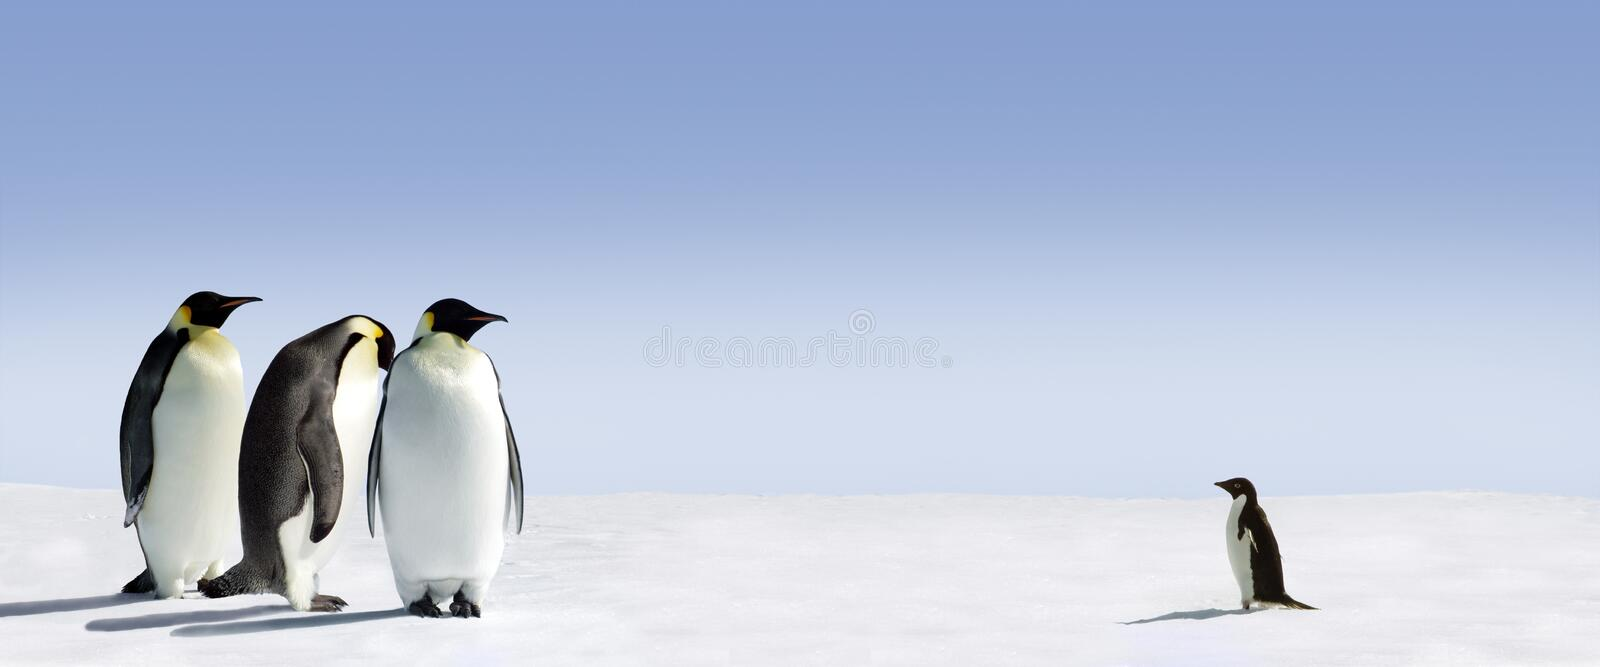 Penguins Meeting. Huge Emperor penguins meeting a small Adelie penguin